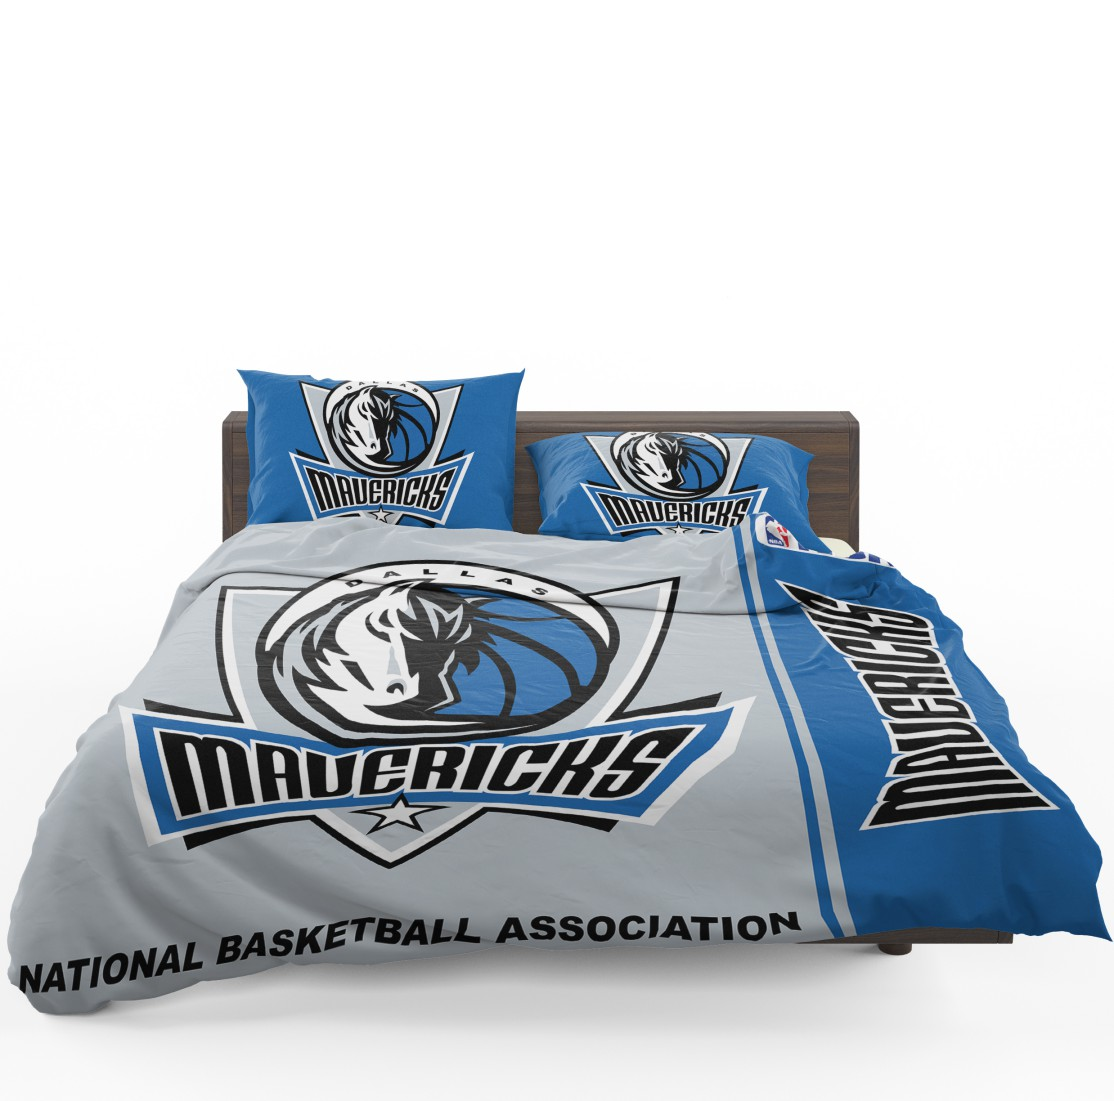 Dallas Mavericks Nba Basketball Bedding Set